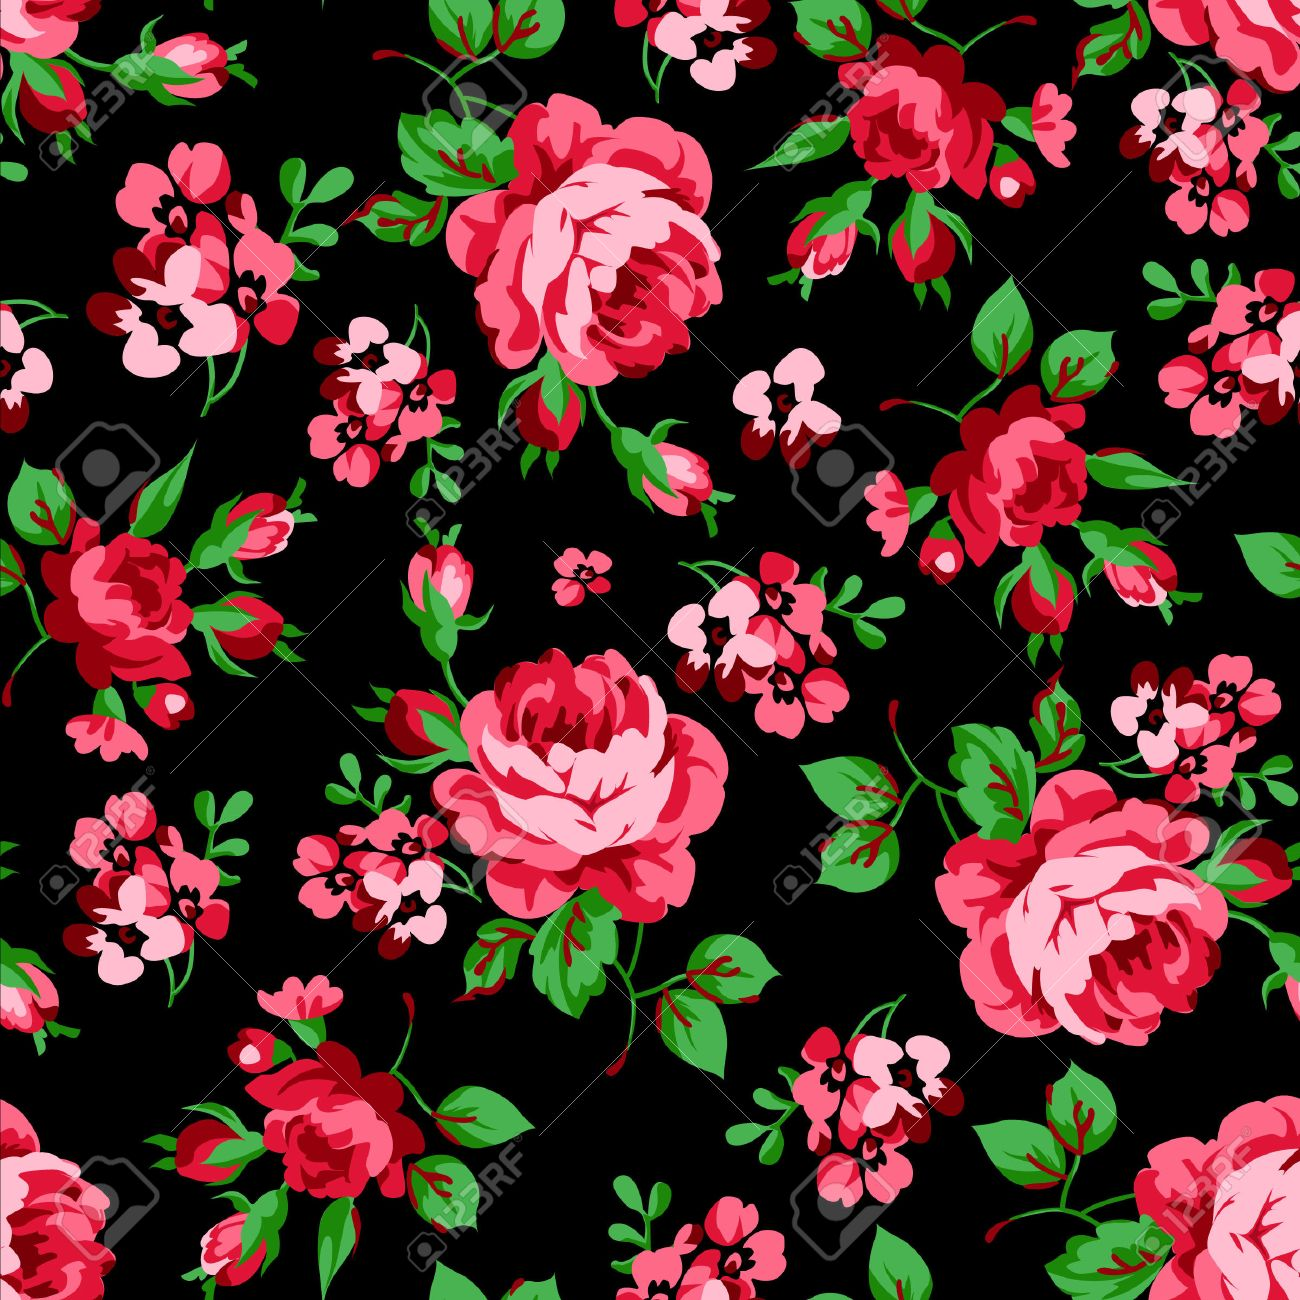 Seamless Floral Pattern With Red Roses On Black Background Royalty